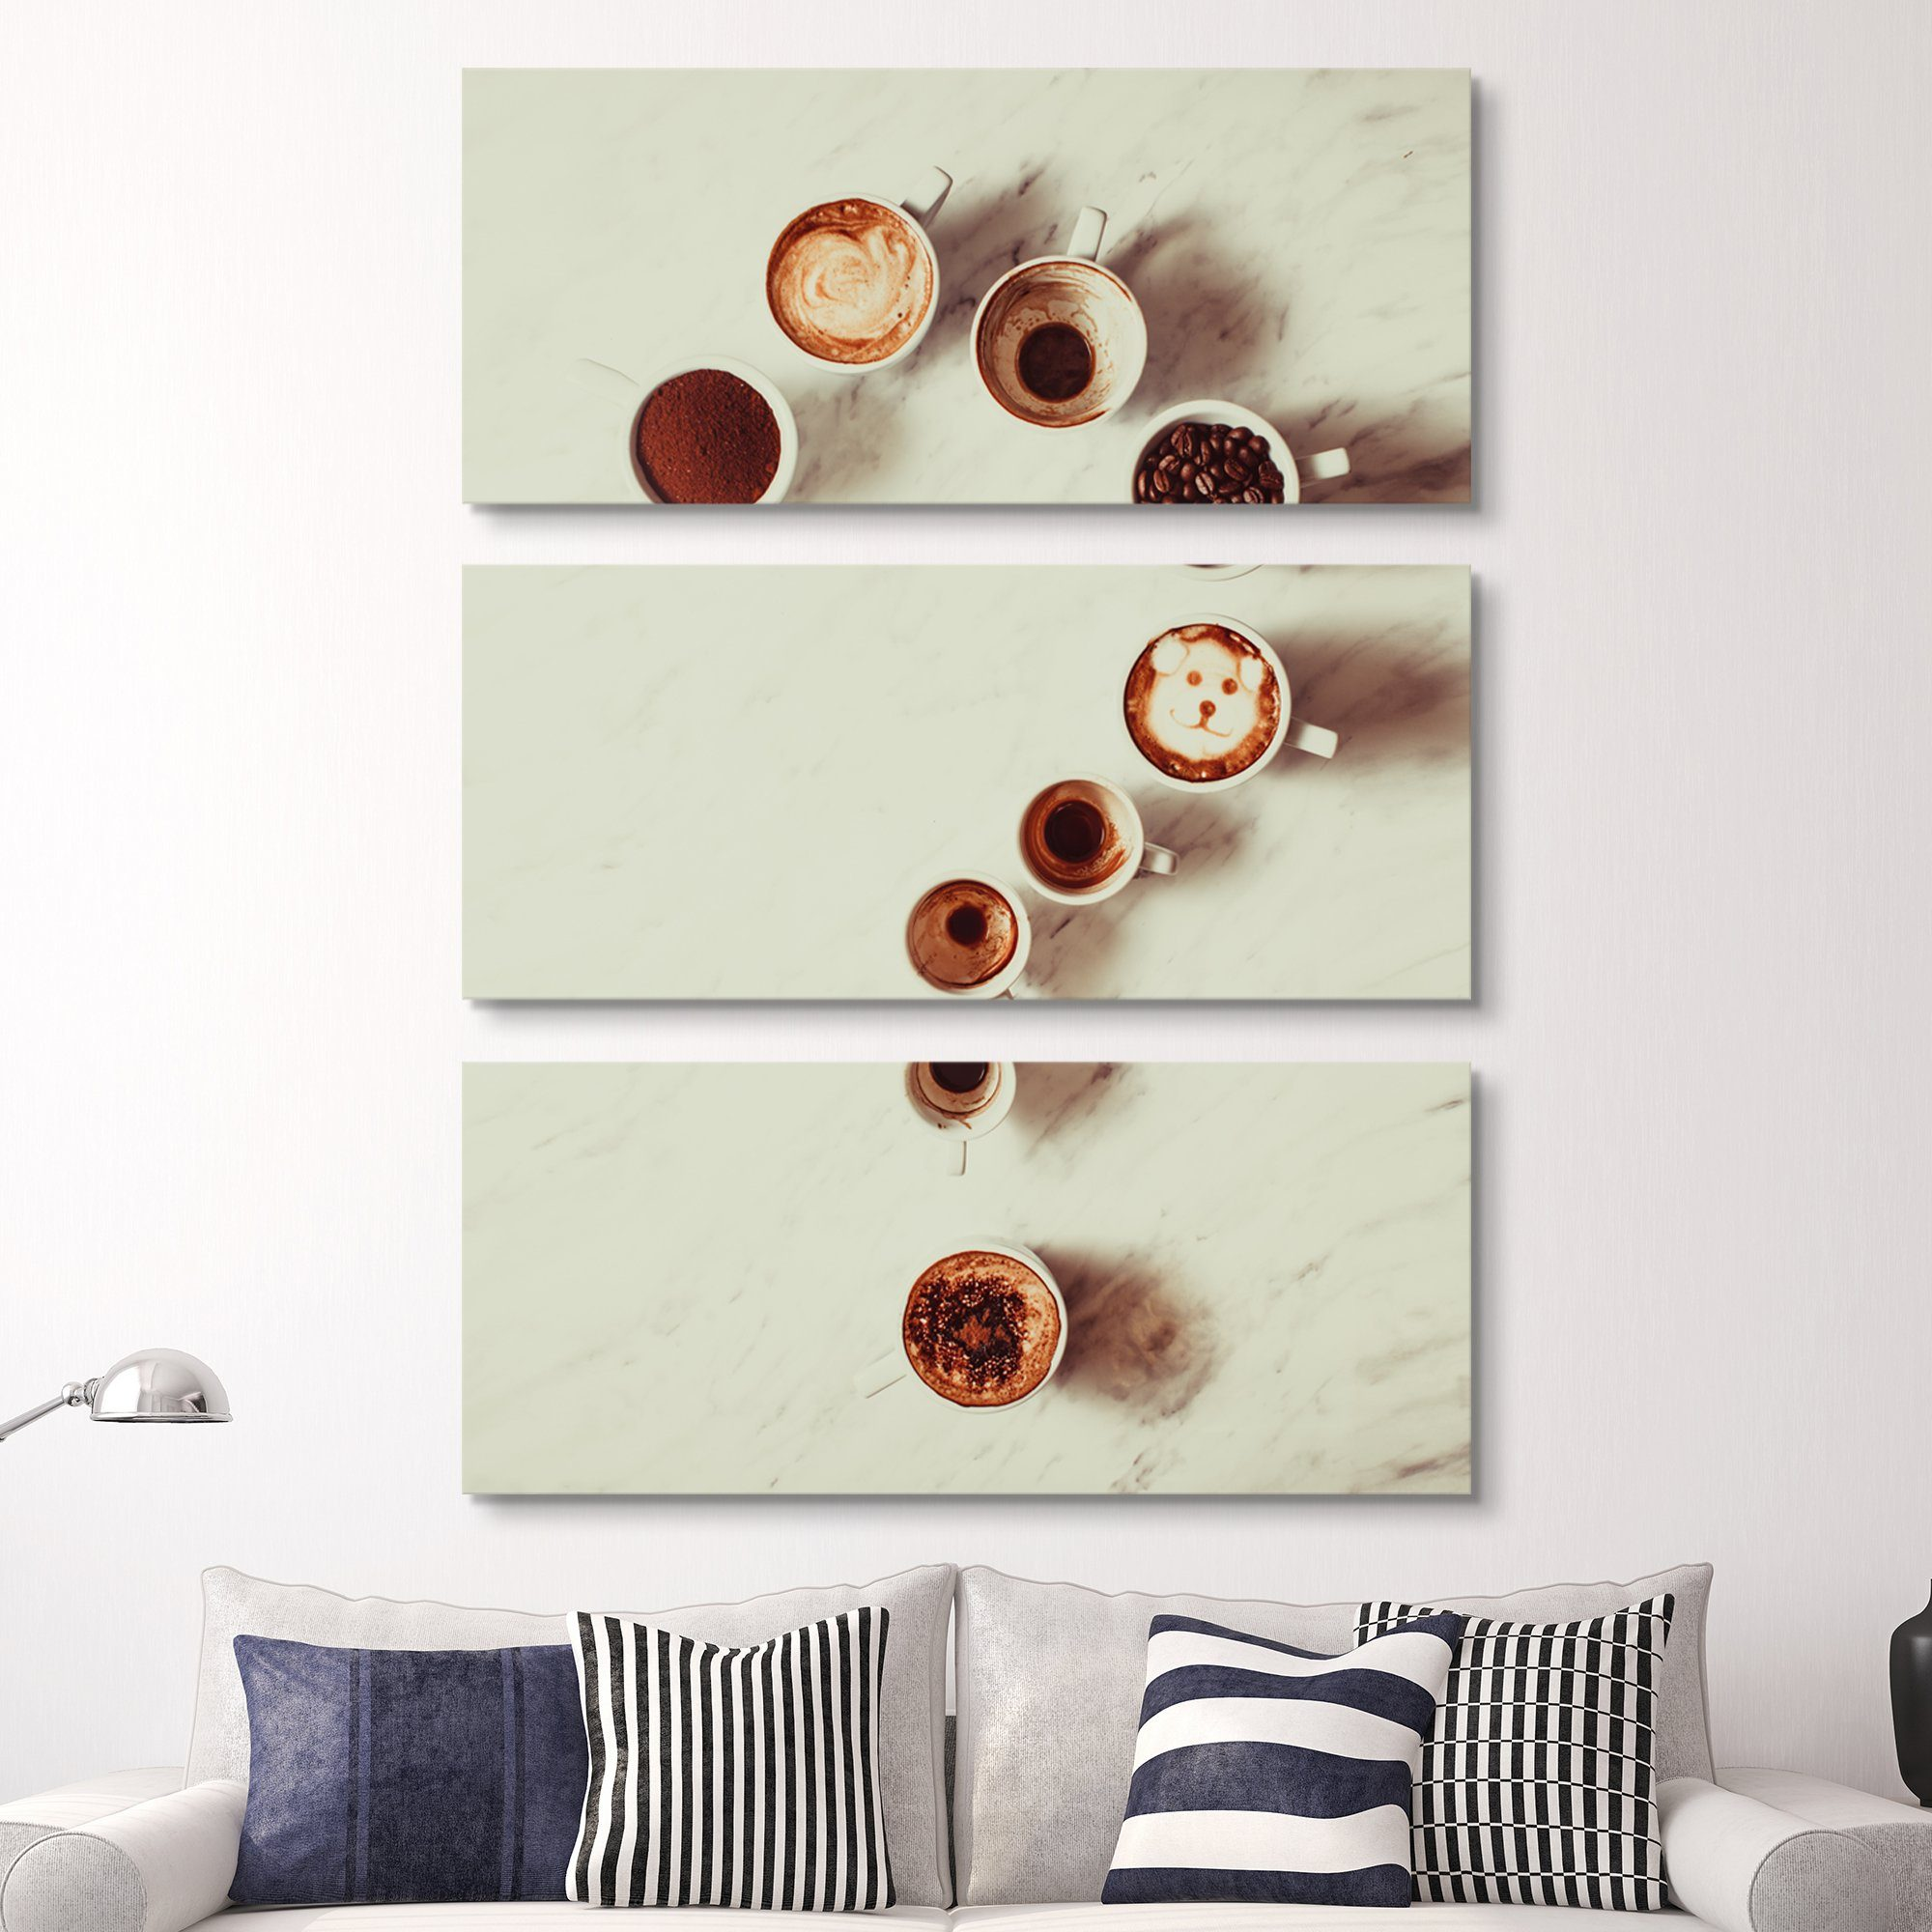 3 piece Ask Me wall art